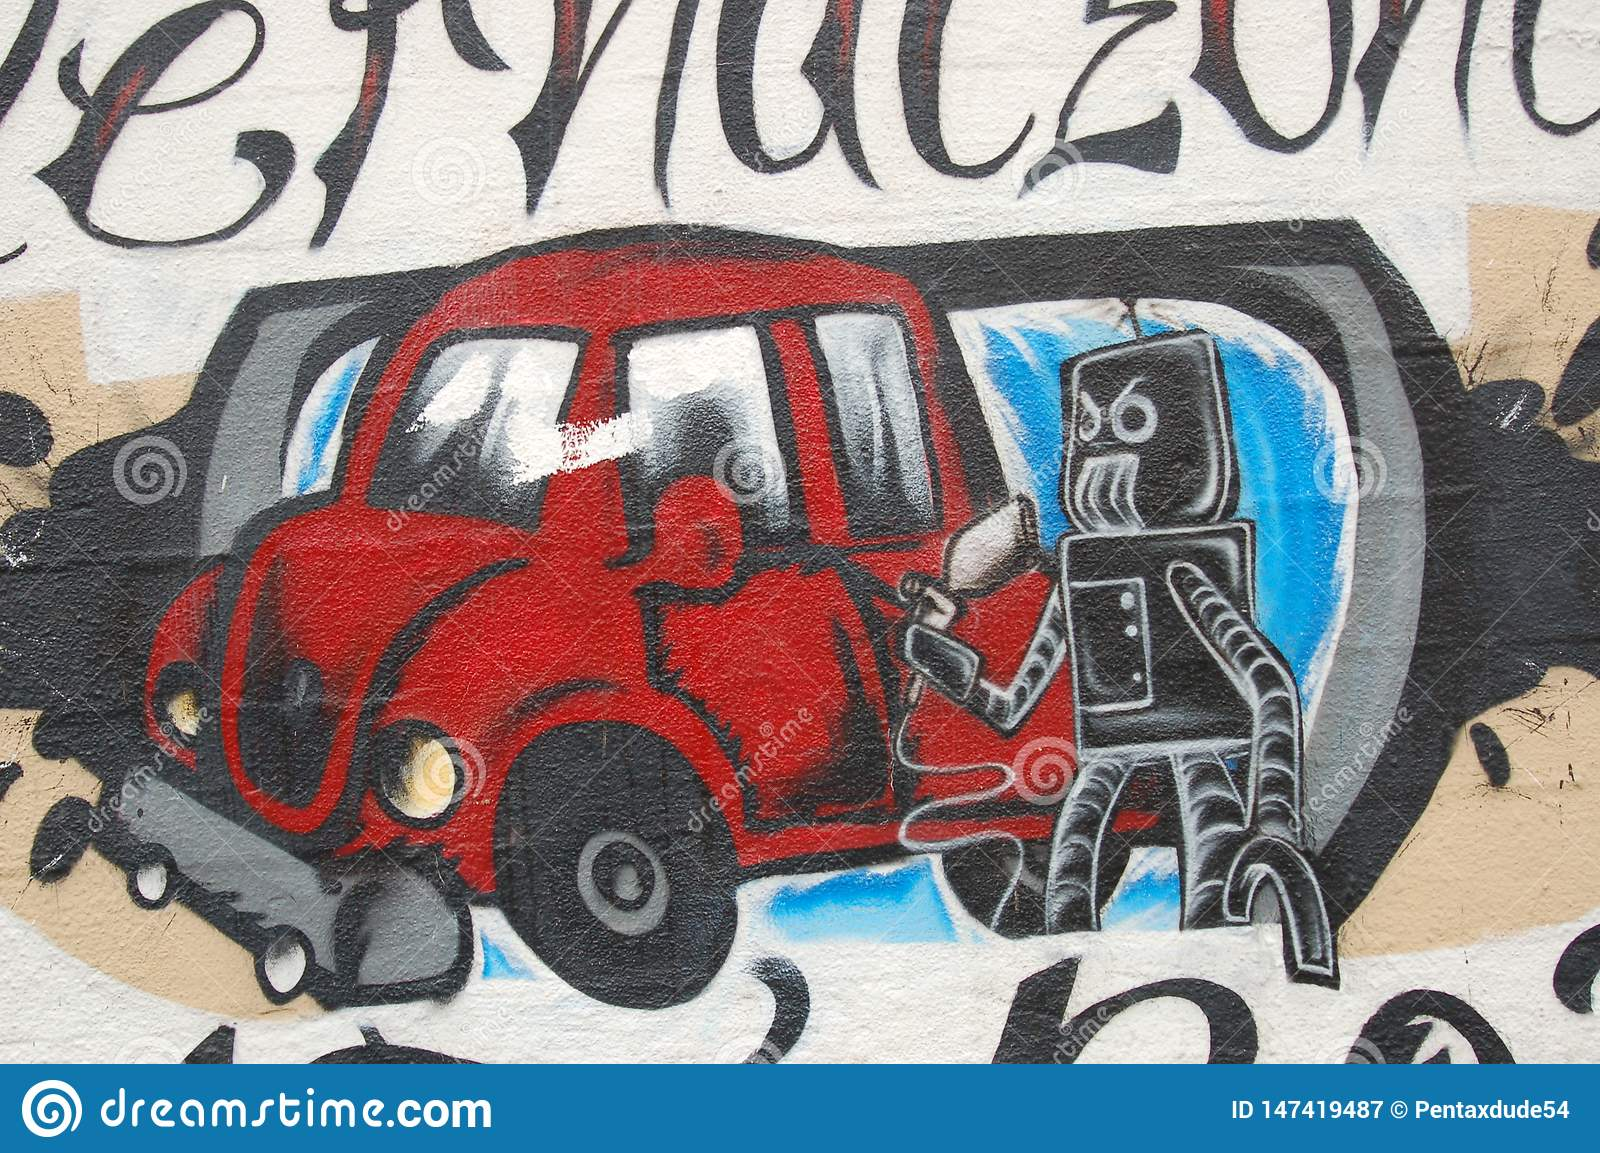 Robot and car mural in Portland, Oregon